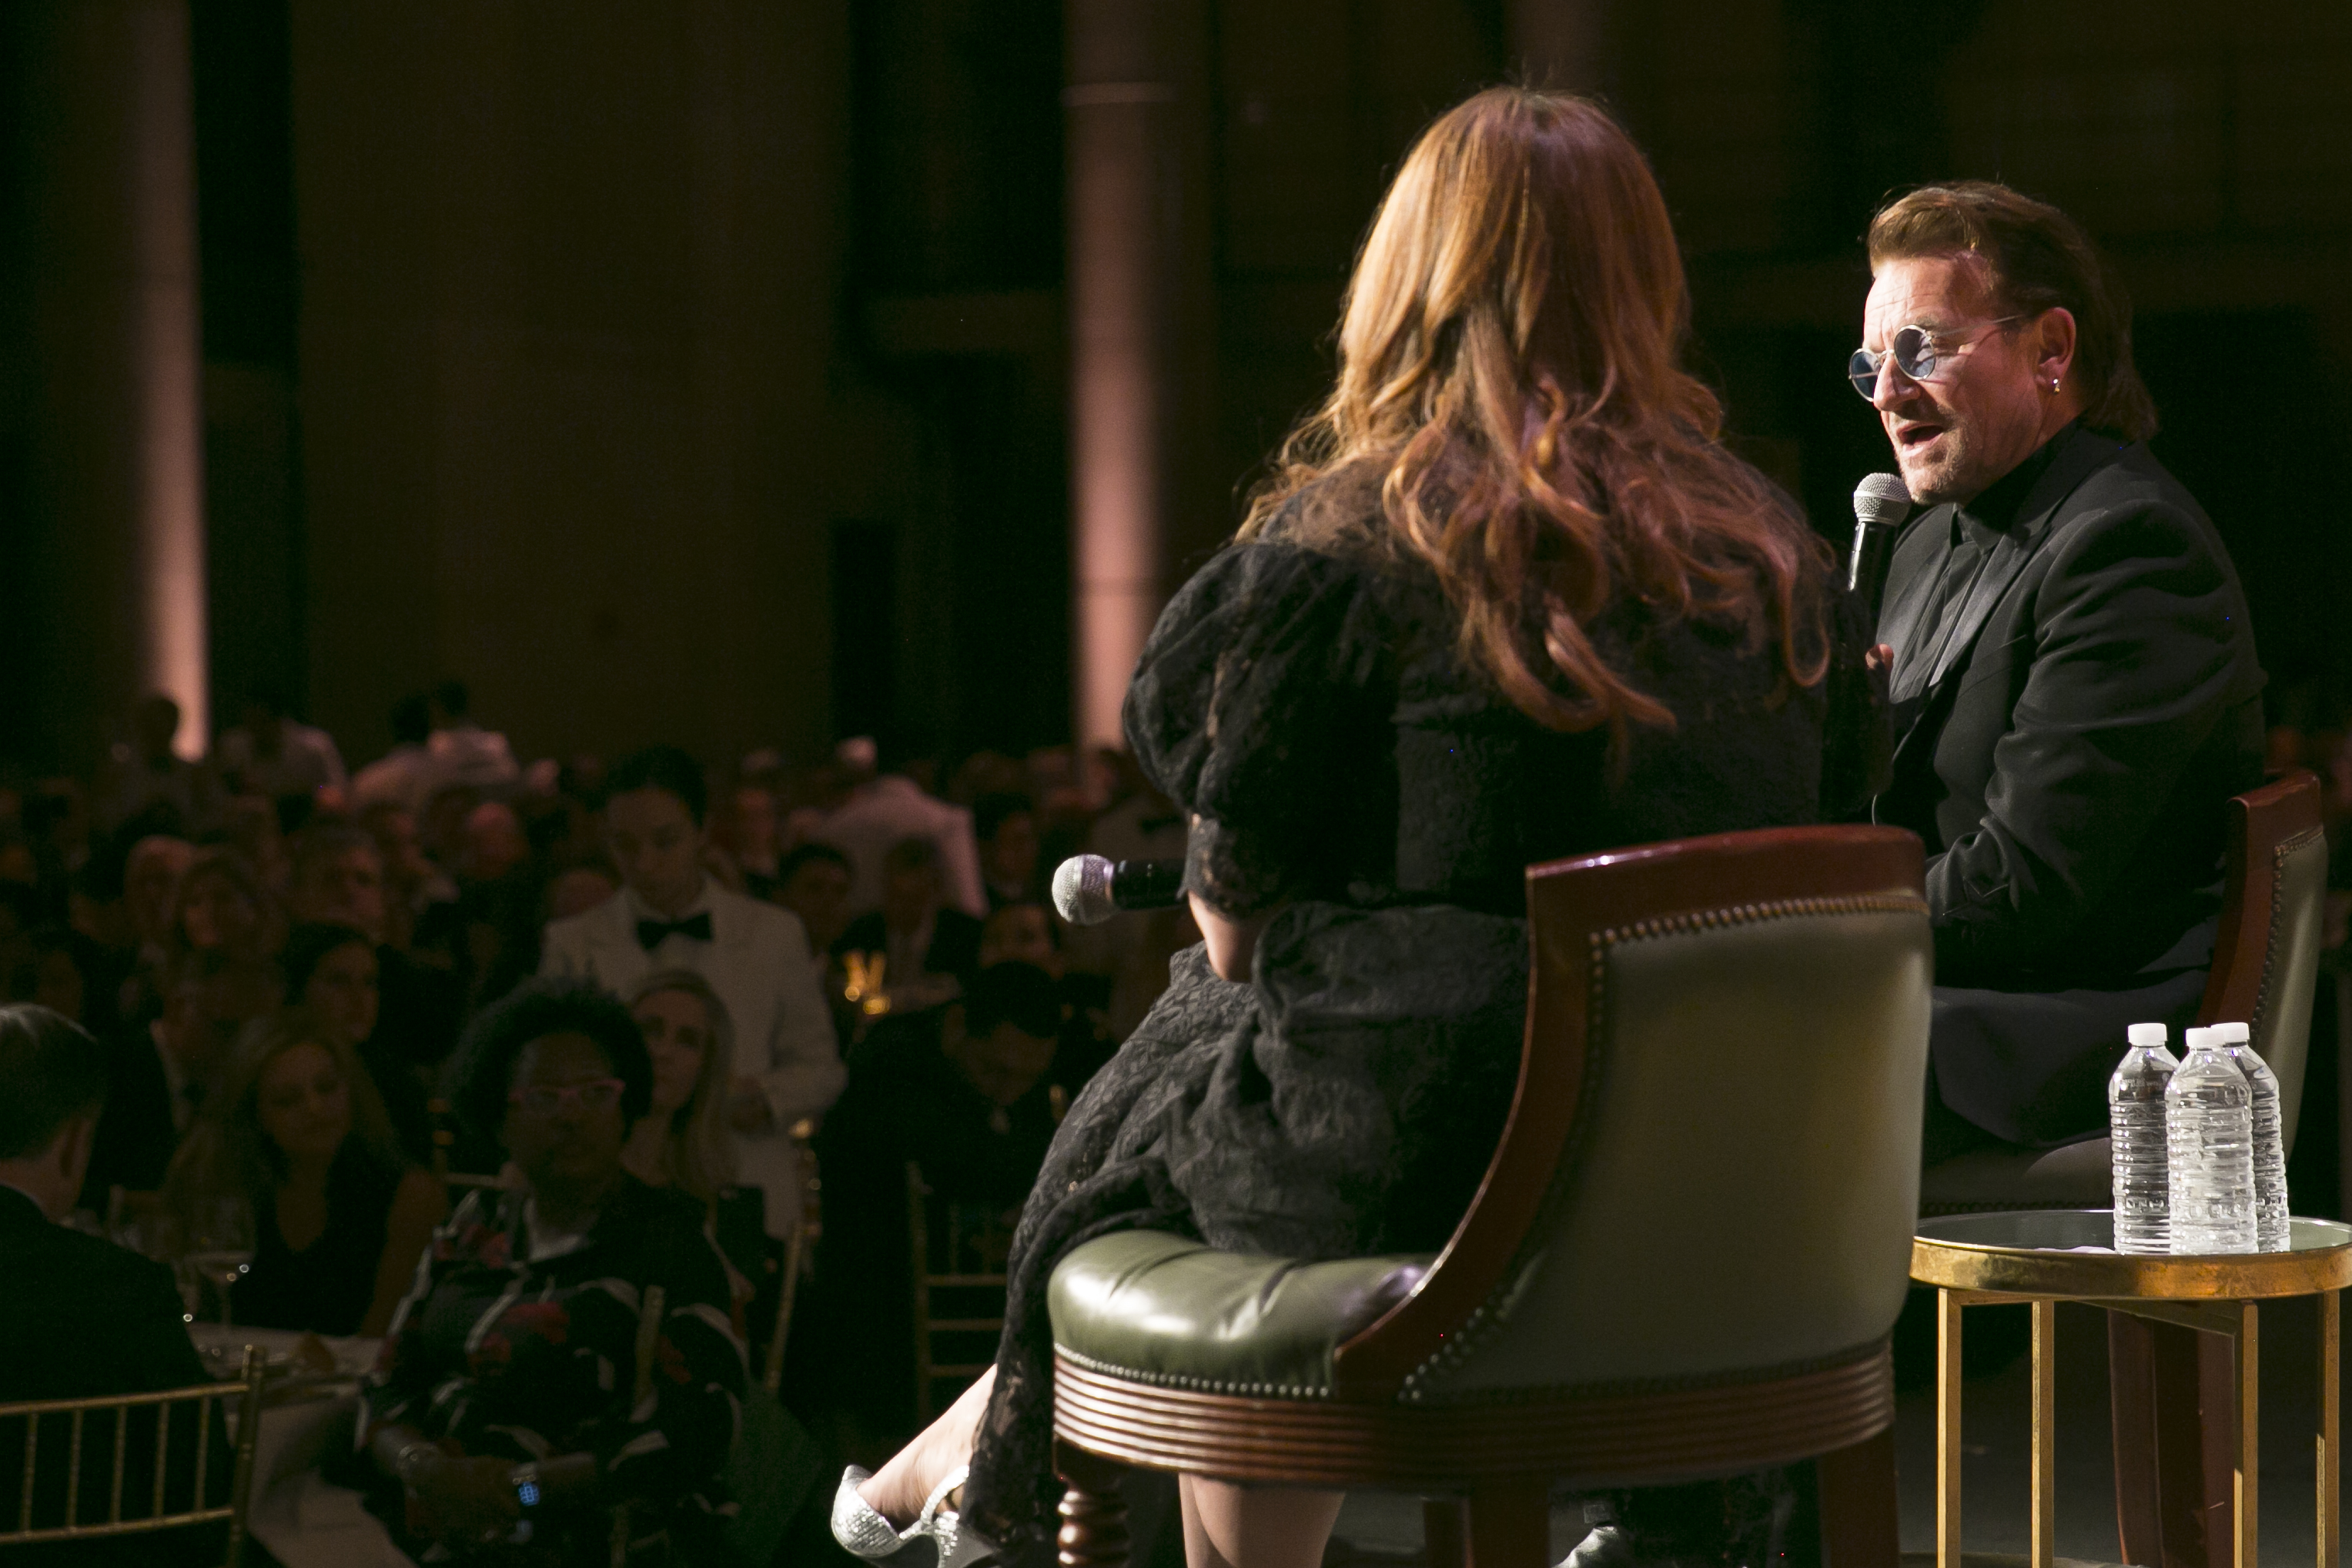 Poverty activist and musician, Bono, onstage at a Concern fundraising event in New York.